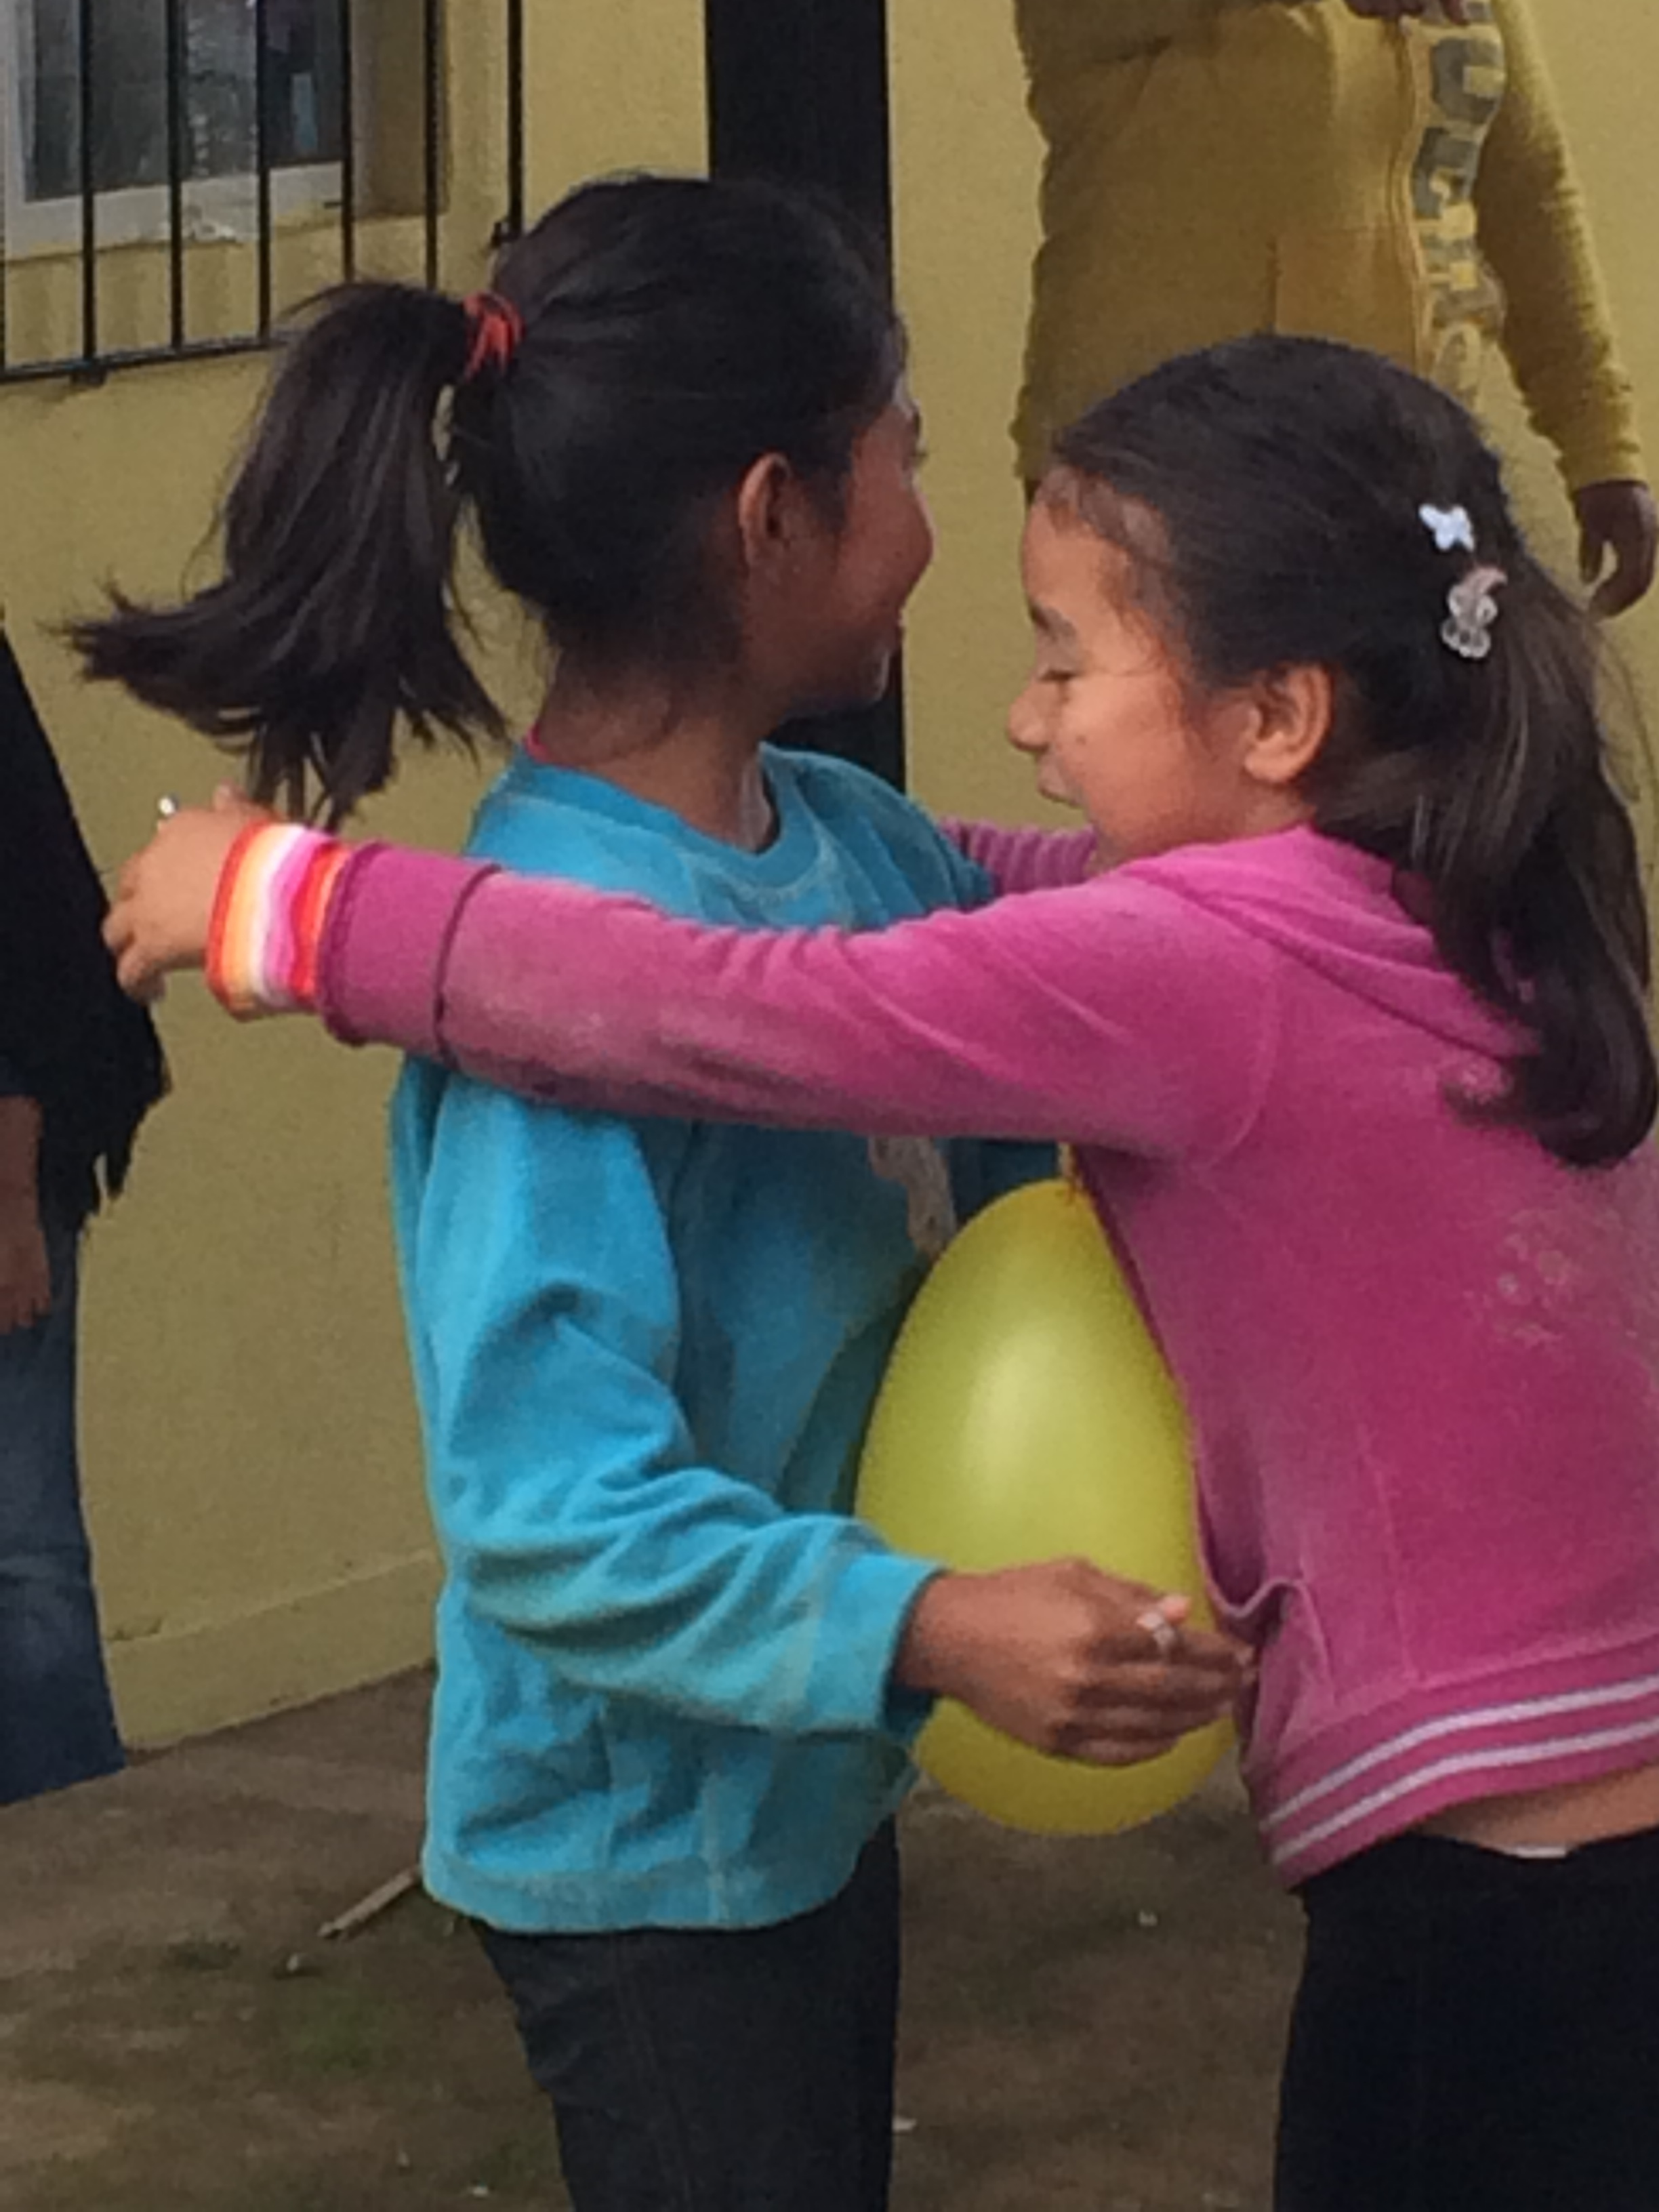 Trying to break a balloon between them